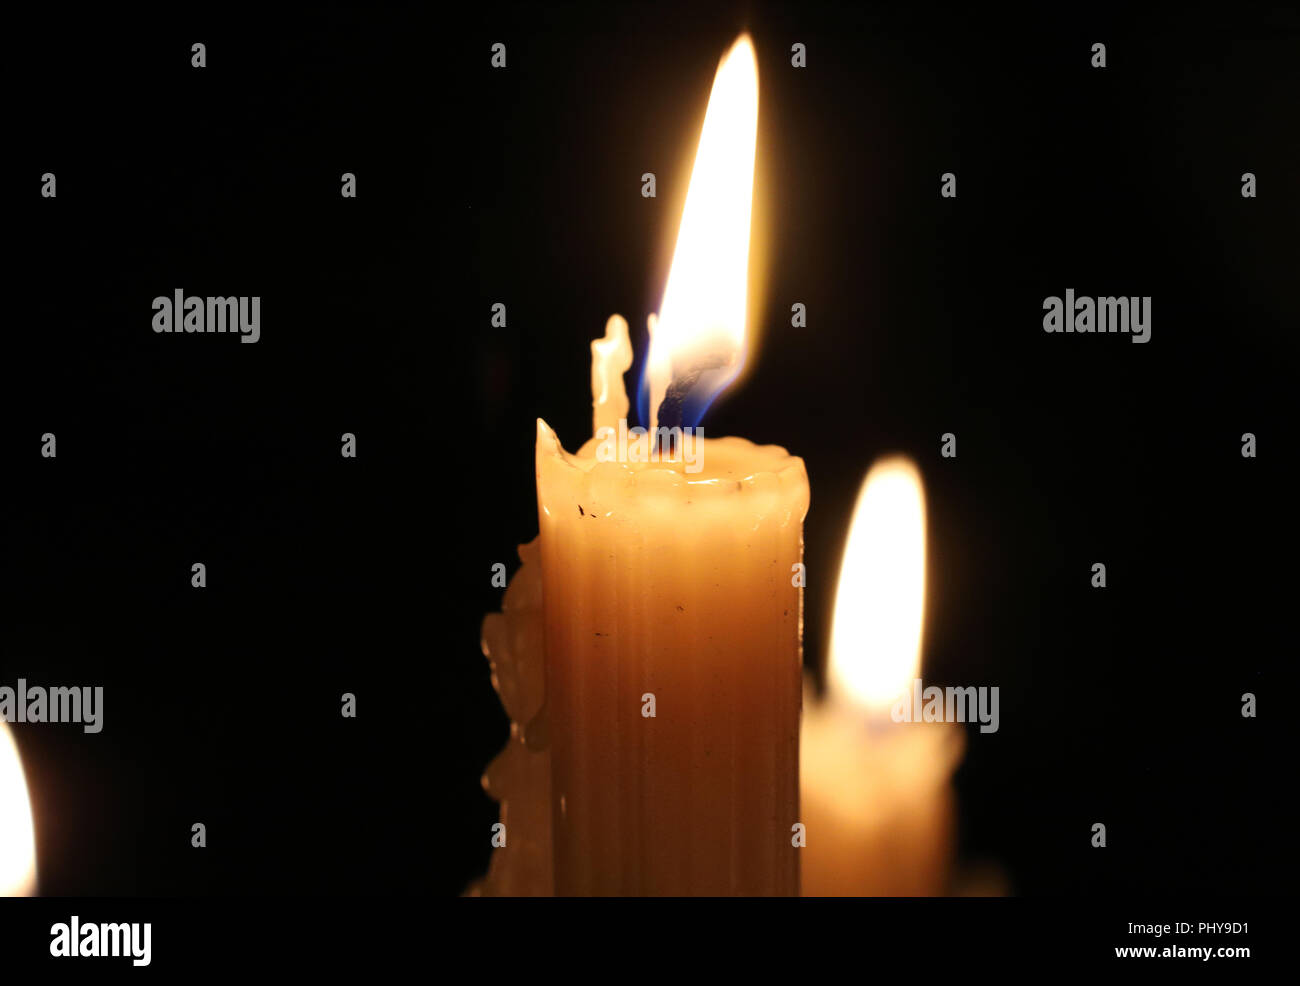 All saints day candles stock photos all saints day candles stock close up of burning wax candles in the dark candle flame candlewick christmas m4hsunfo